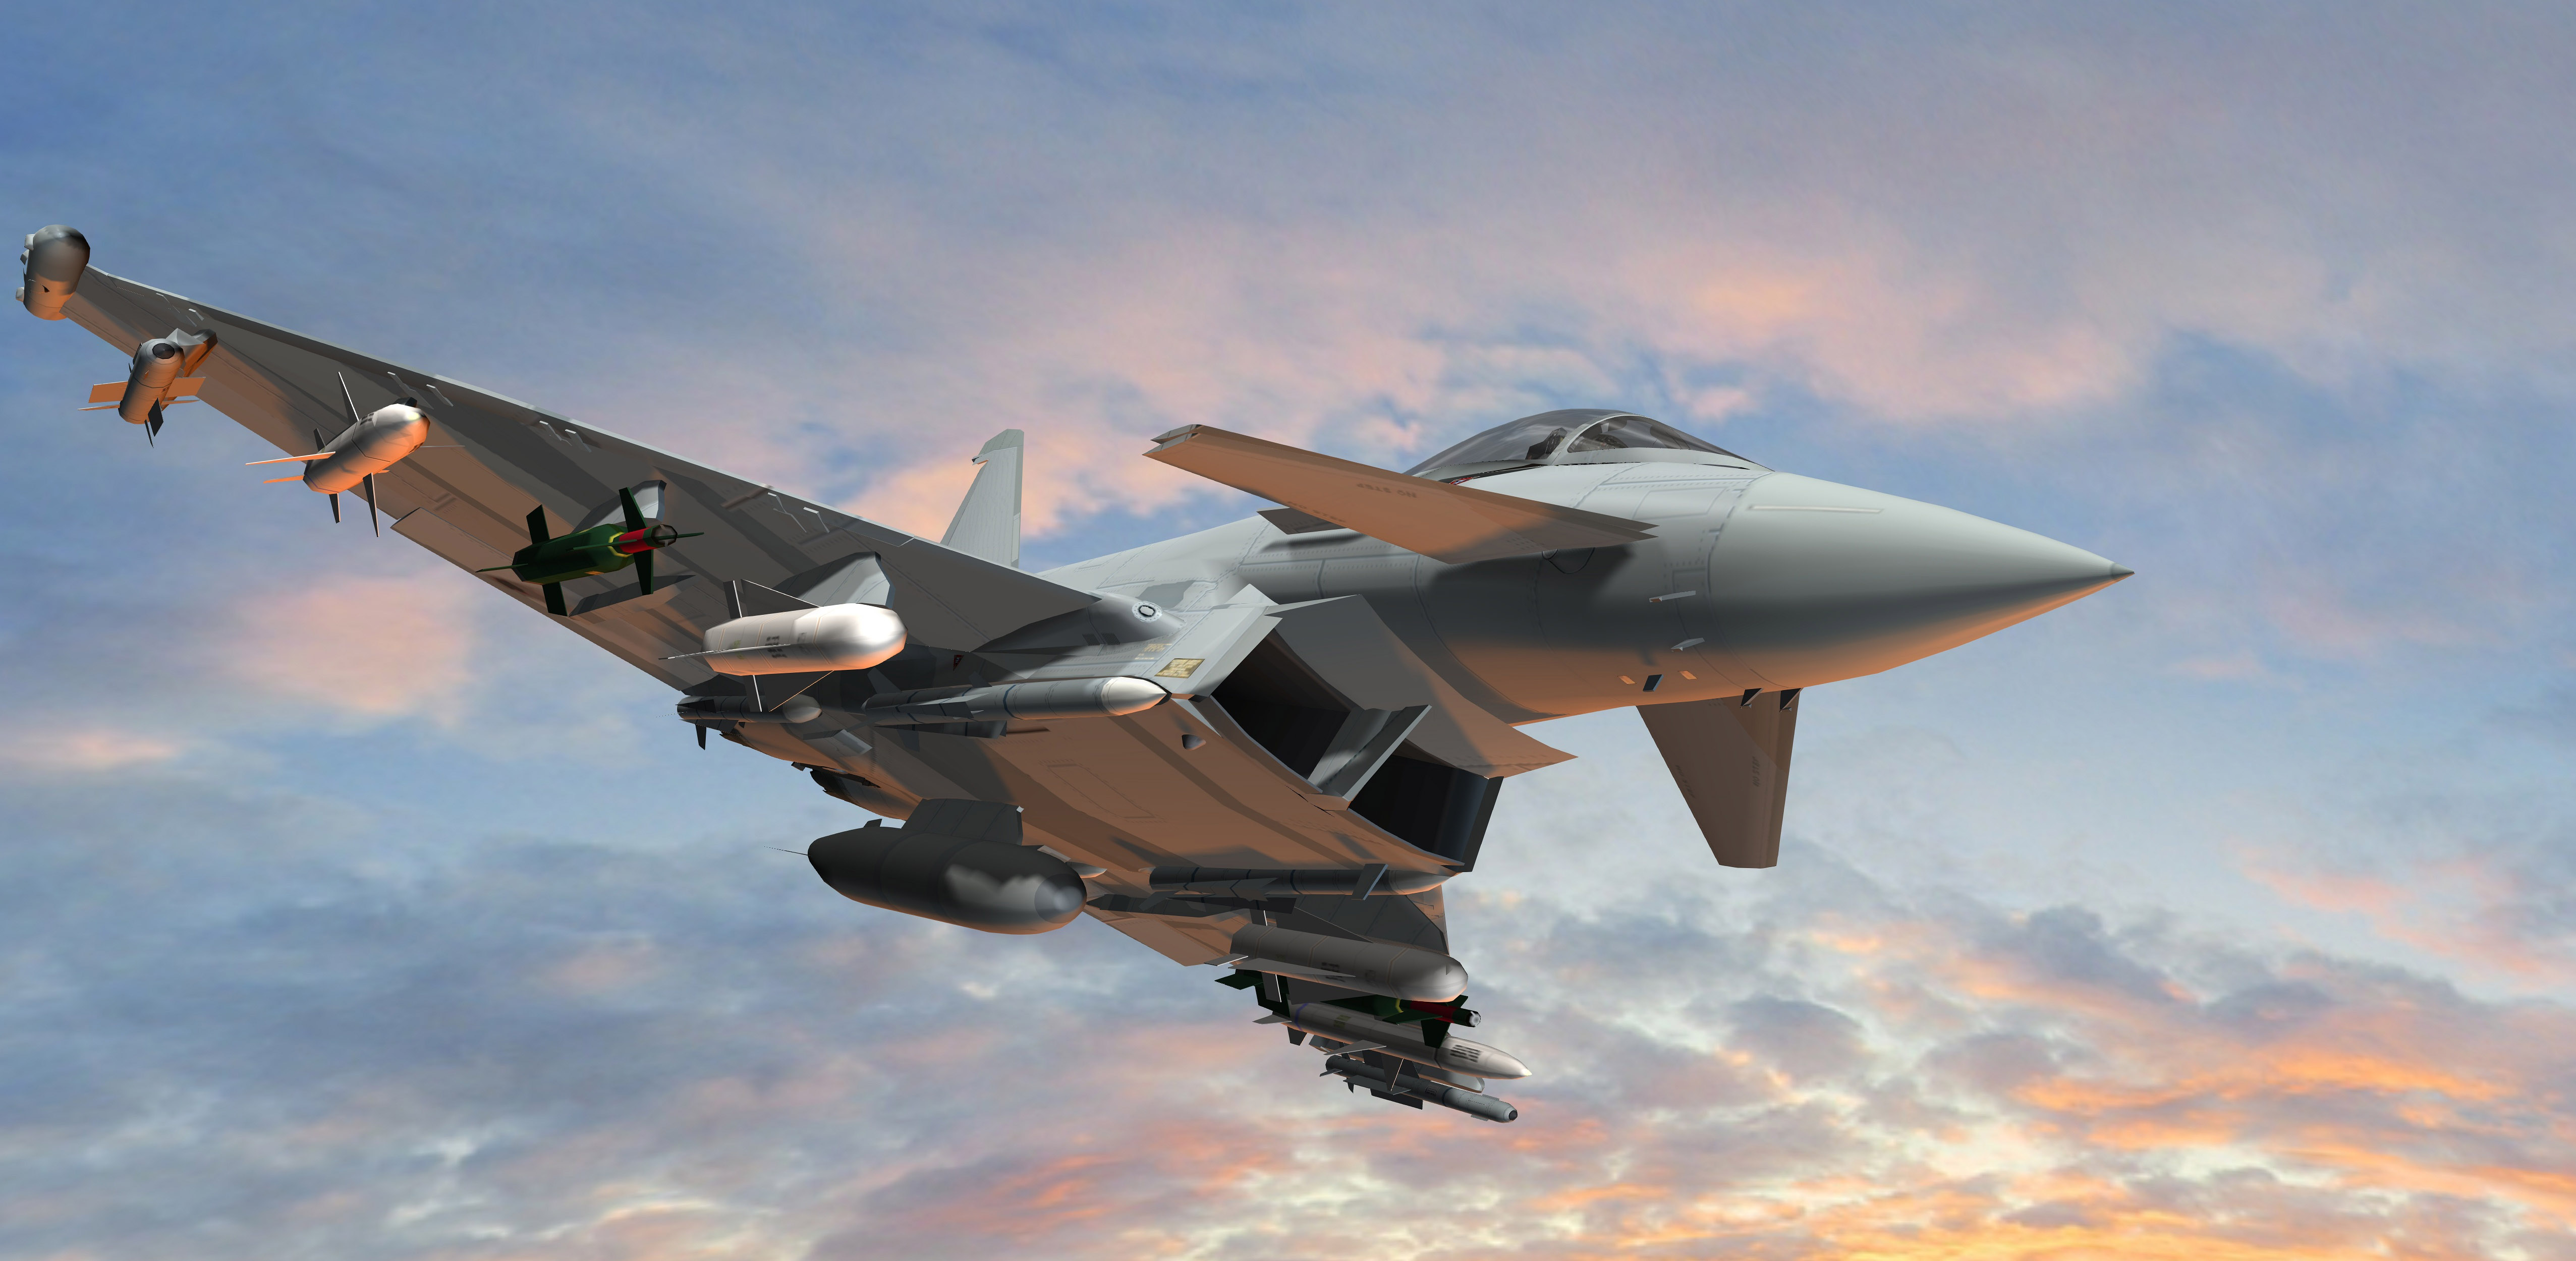 UES' Aerospace Power & Propulsion Technologies division works to advance aerospace components and subsystems for future applications